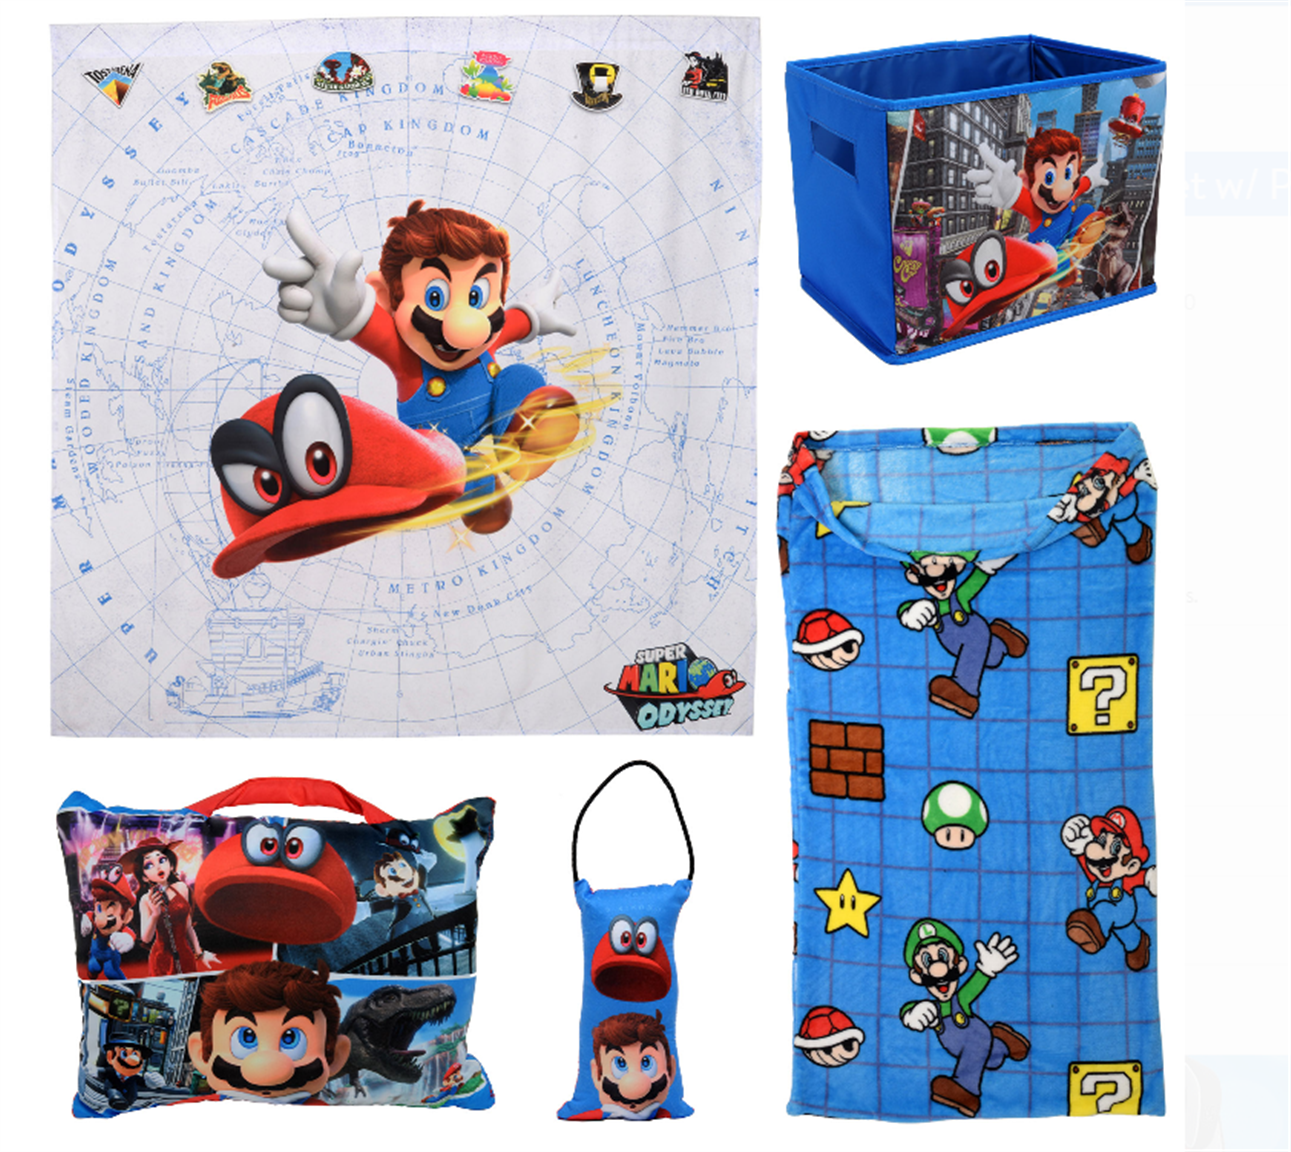 Walmart – Super Mario 5Pc Kids Bedroom Set Only $15.00, Reg $49.98 + Free Store Pickup!